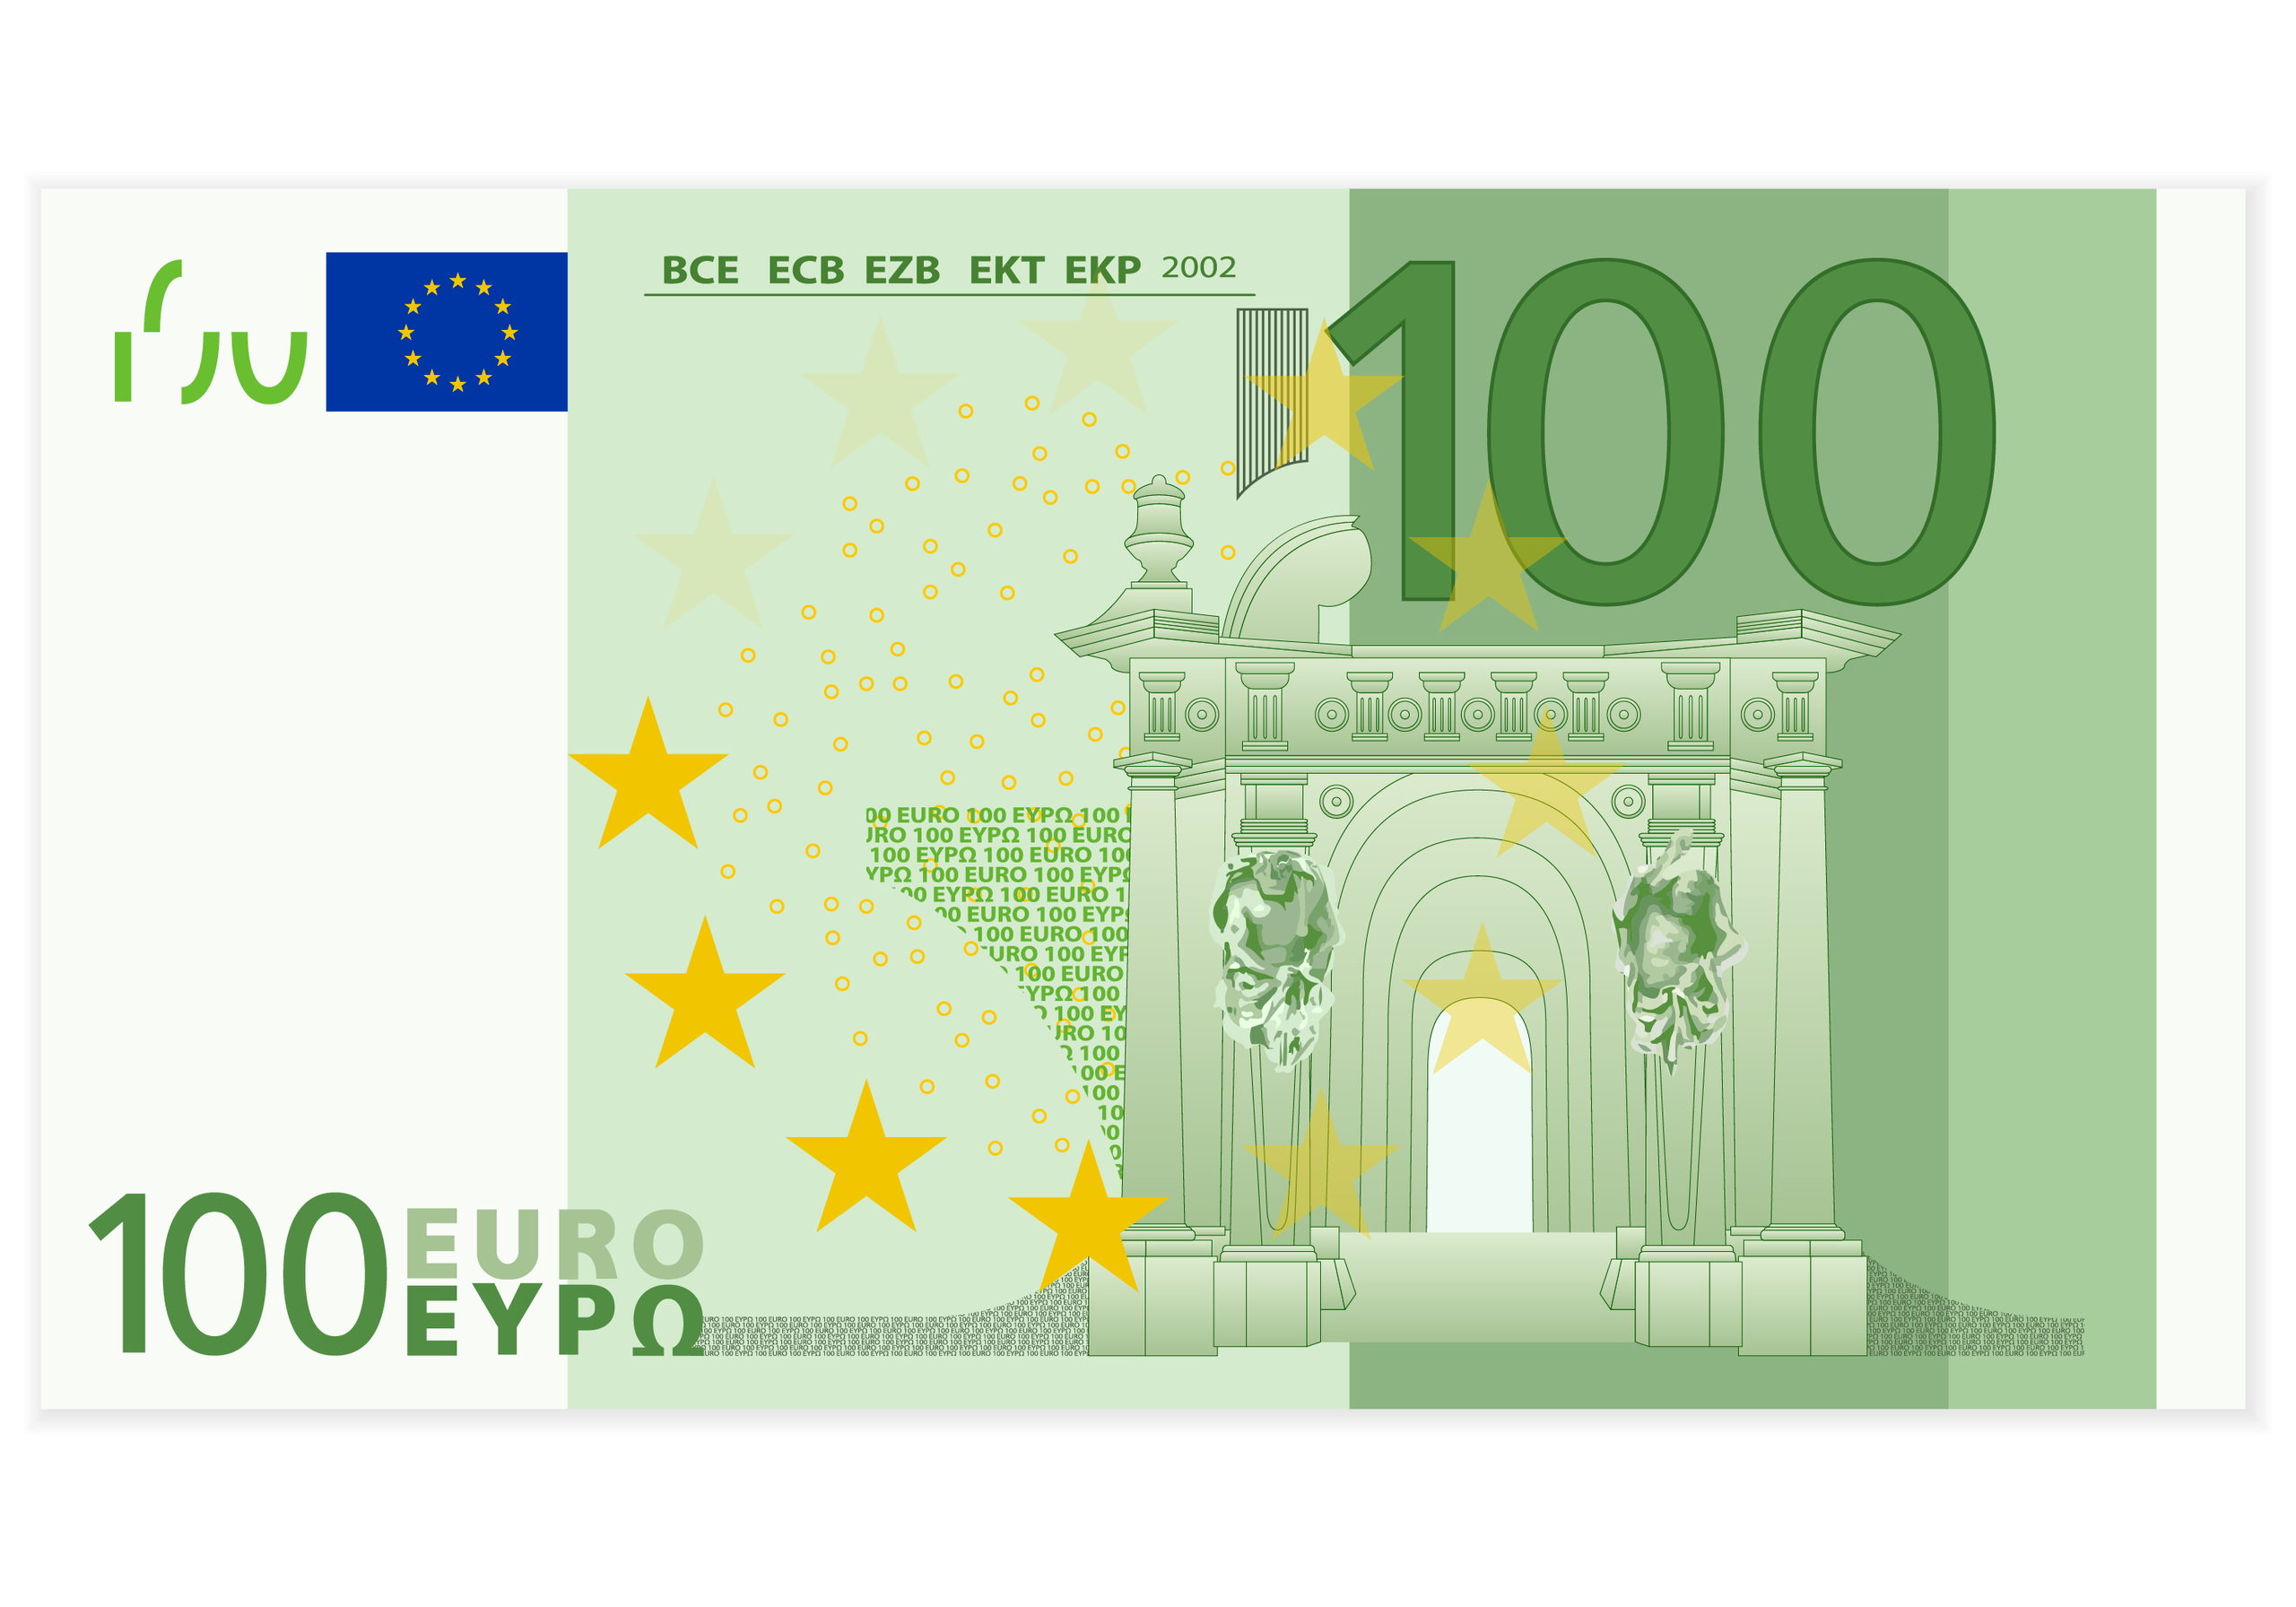 For currency, Greece uses the Euro.